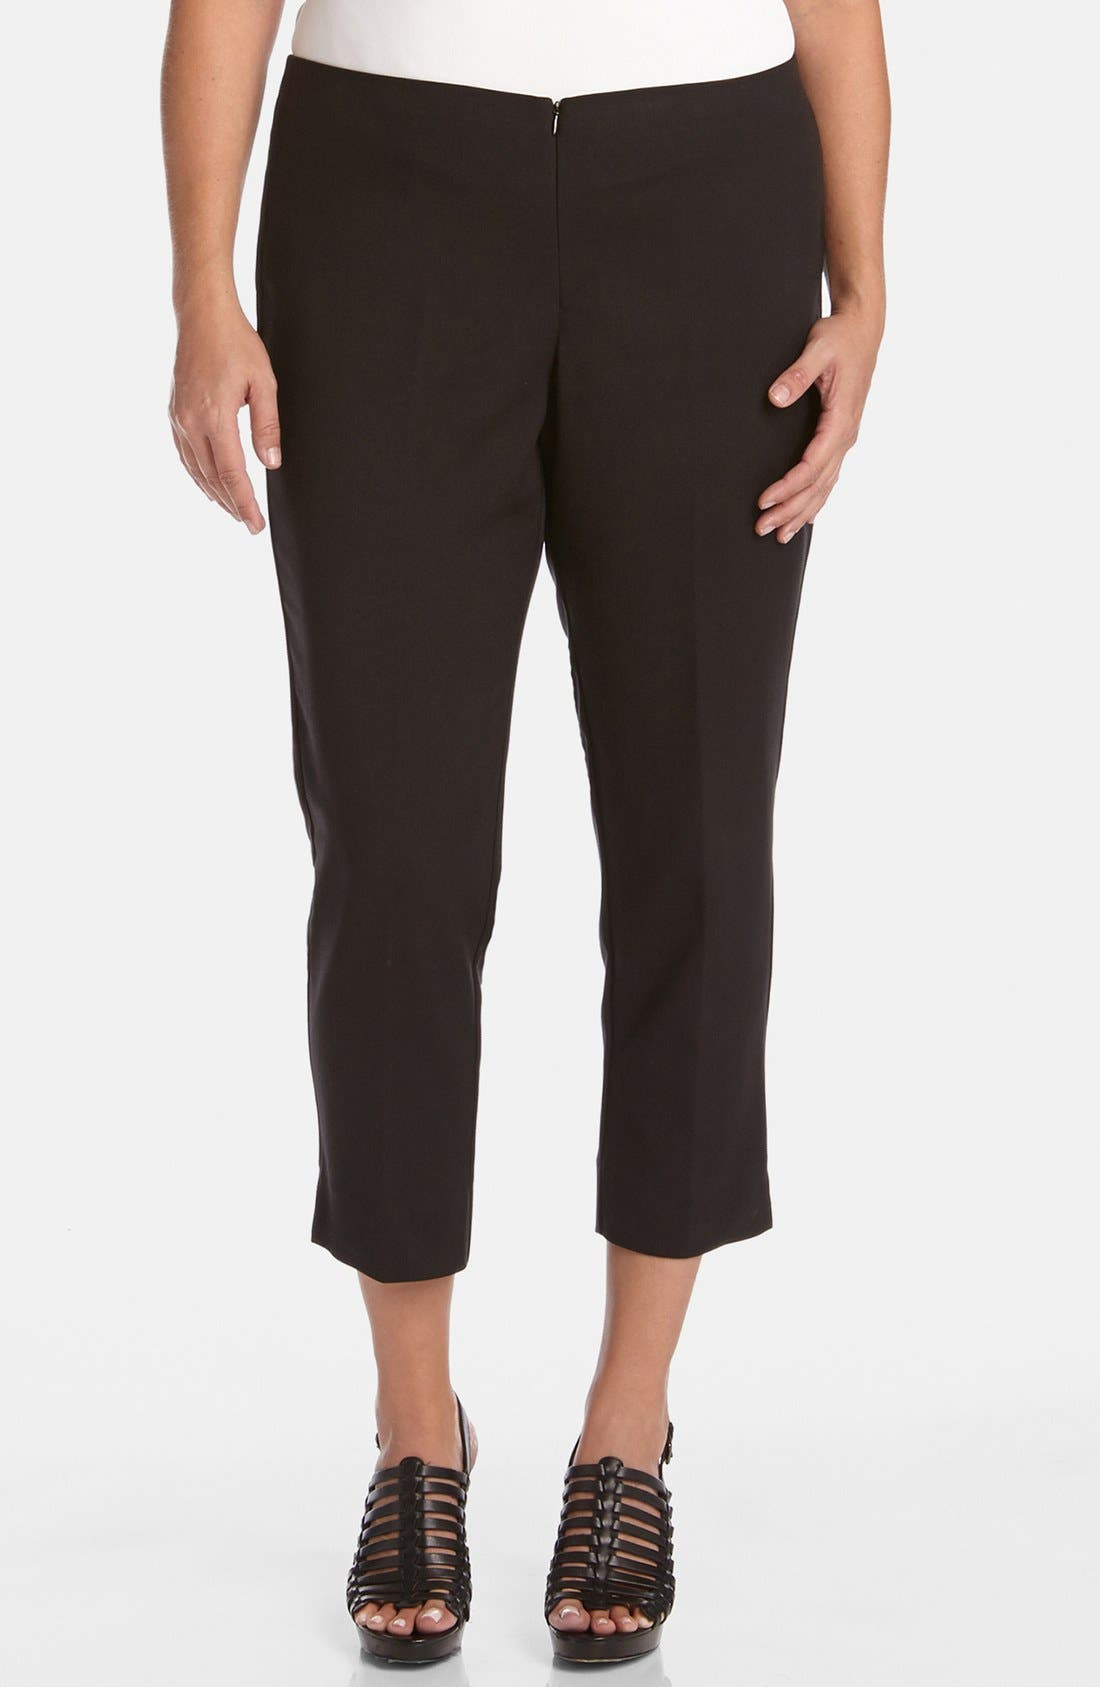 Stretch Capri Pants,                         Main,                         color, BLACK